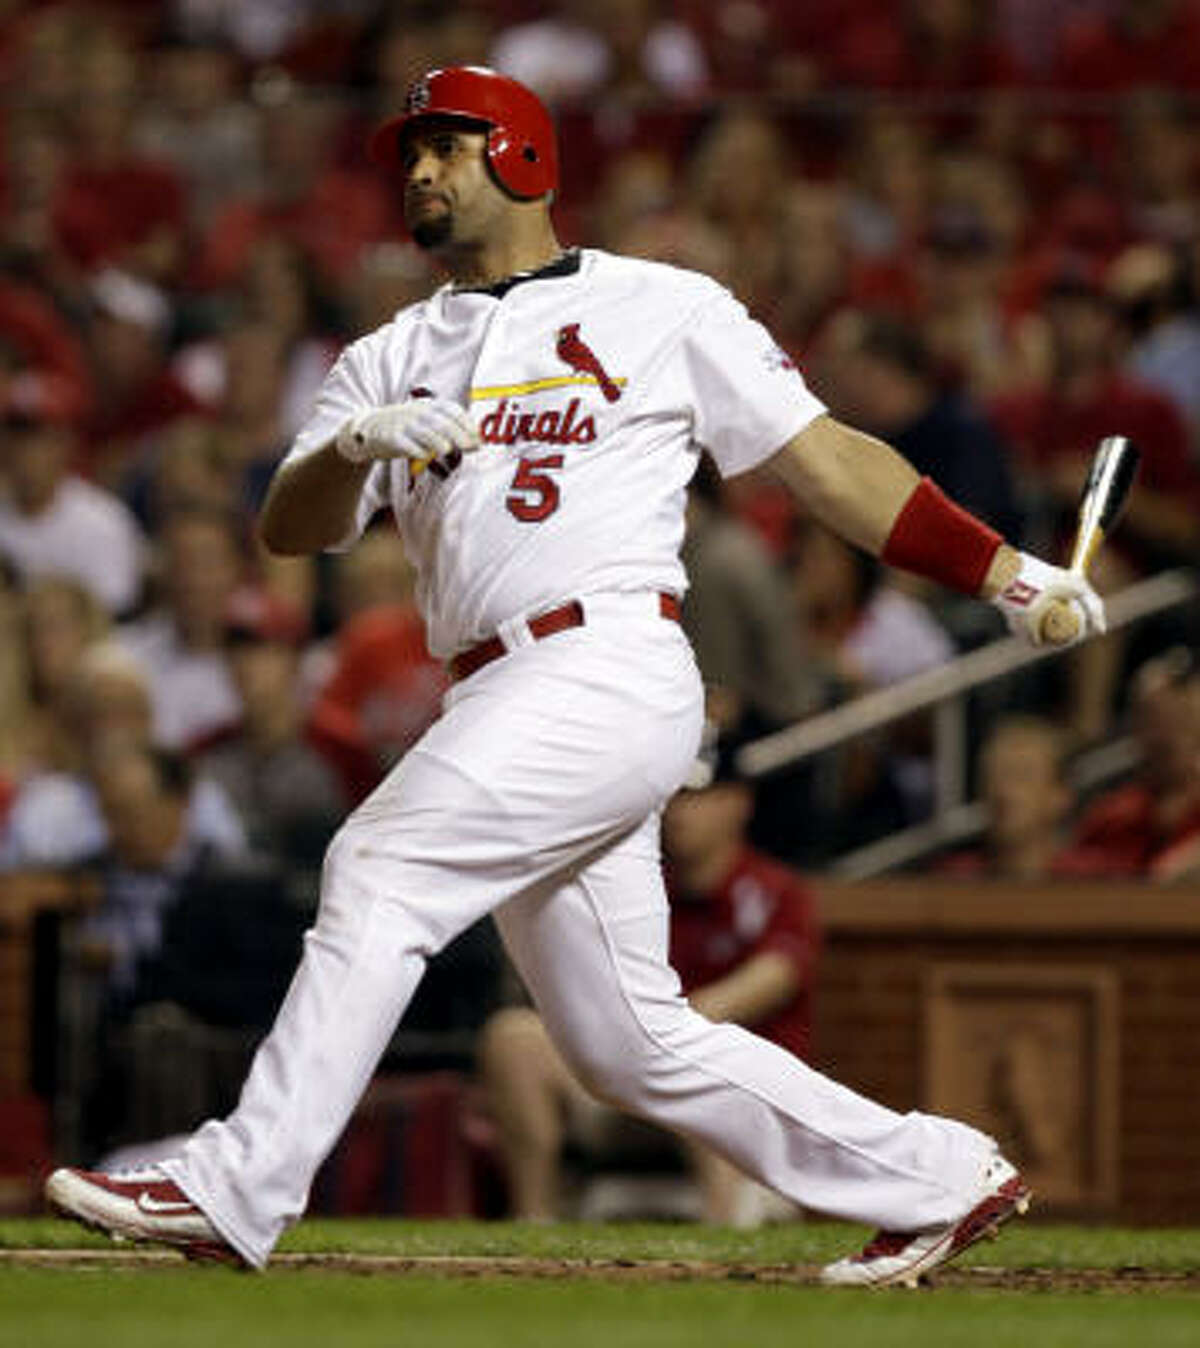 April 12: First road game Houston travels to St. Louis as the opponent in the Cardinals' home opener.